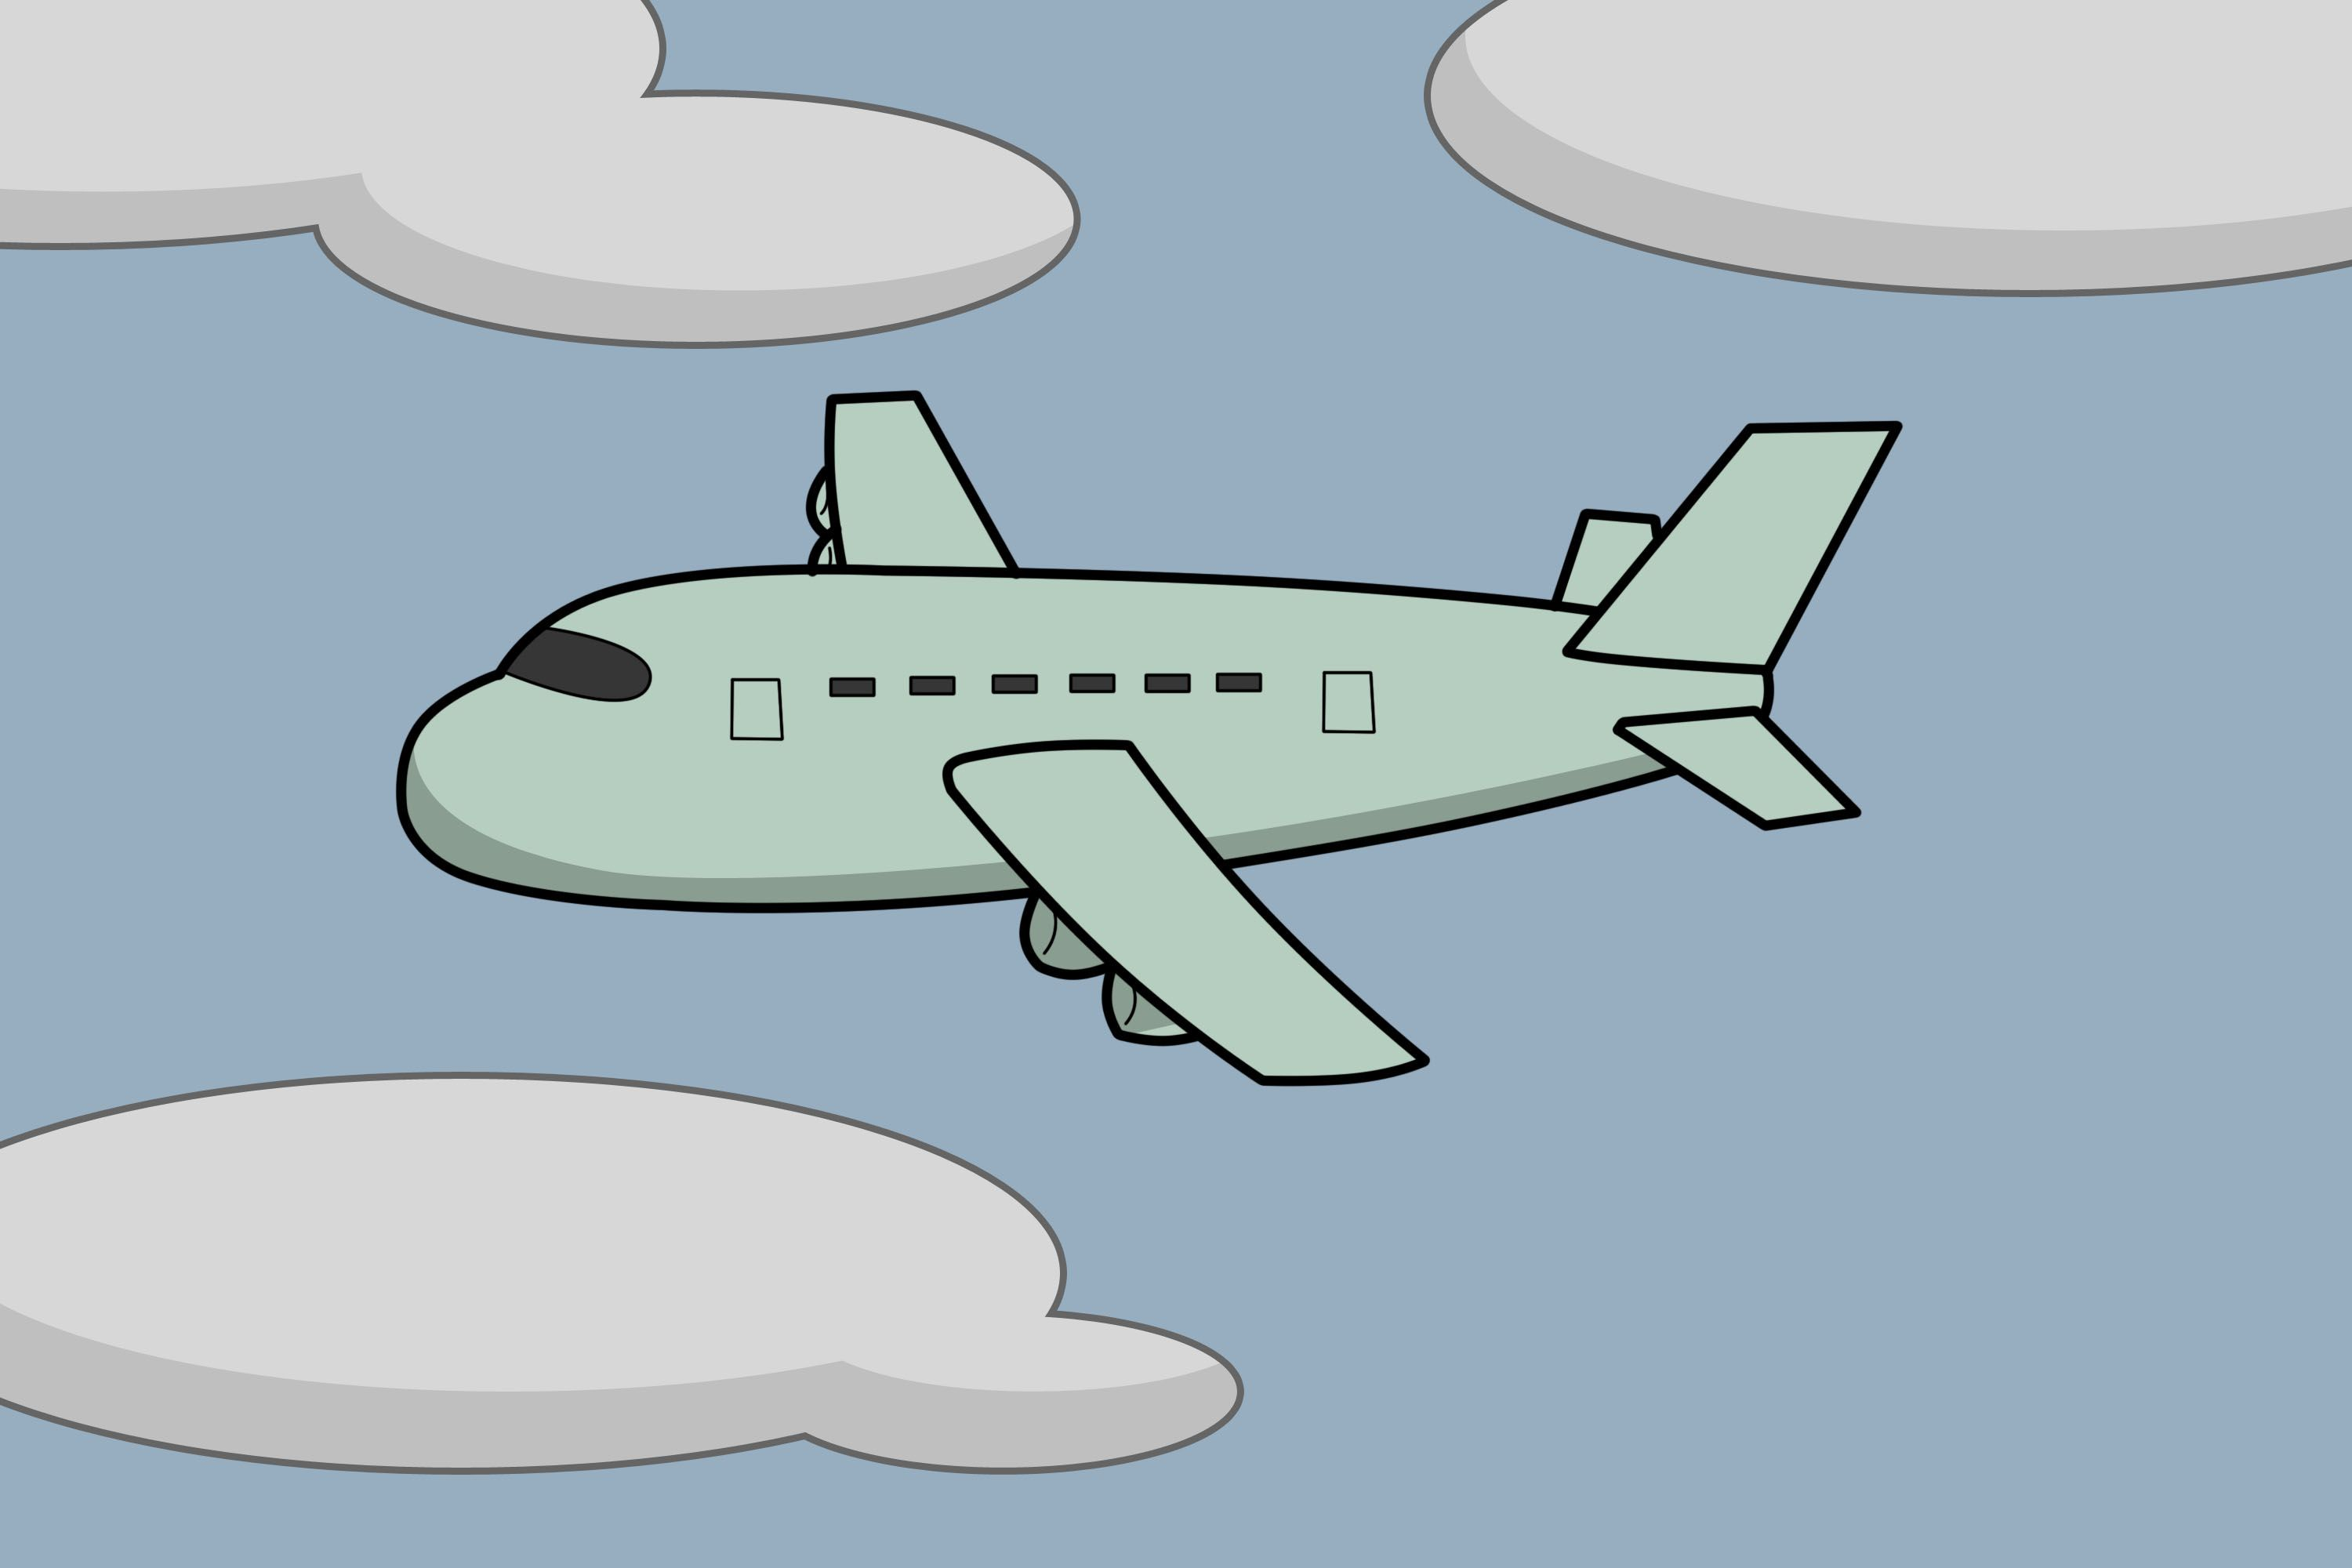 How To Draw A Plane Draw Drawings Drawing For Kids